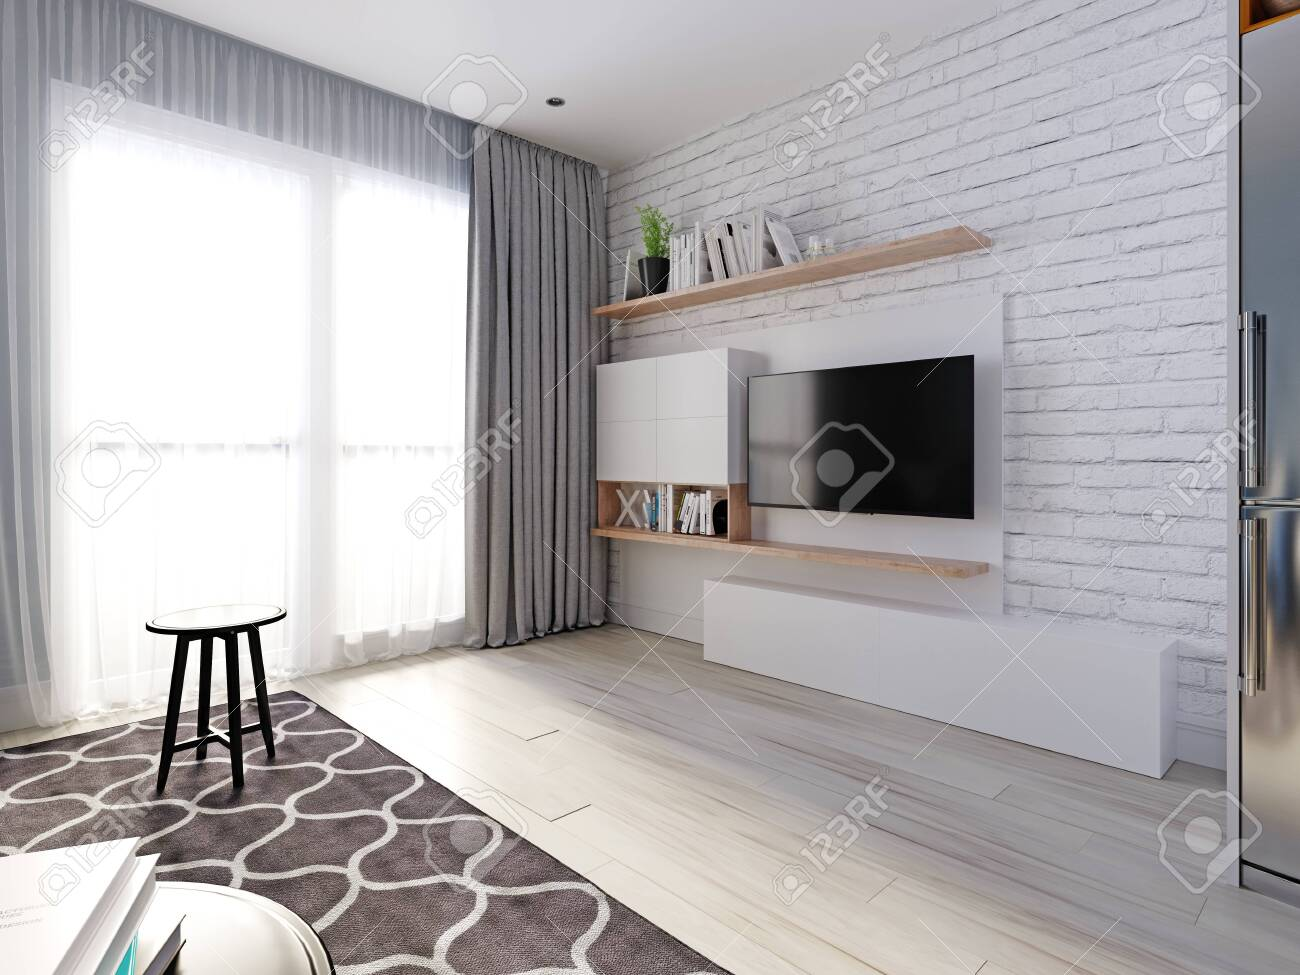 A Tv Unit With A Tv And Bookshelves White Decorative Brick Wall Stock Photo Picture And Royalty Free Image Image 148788256